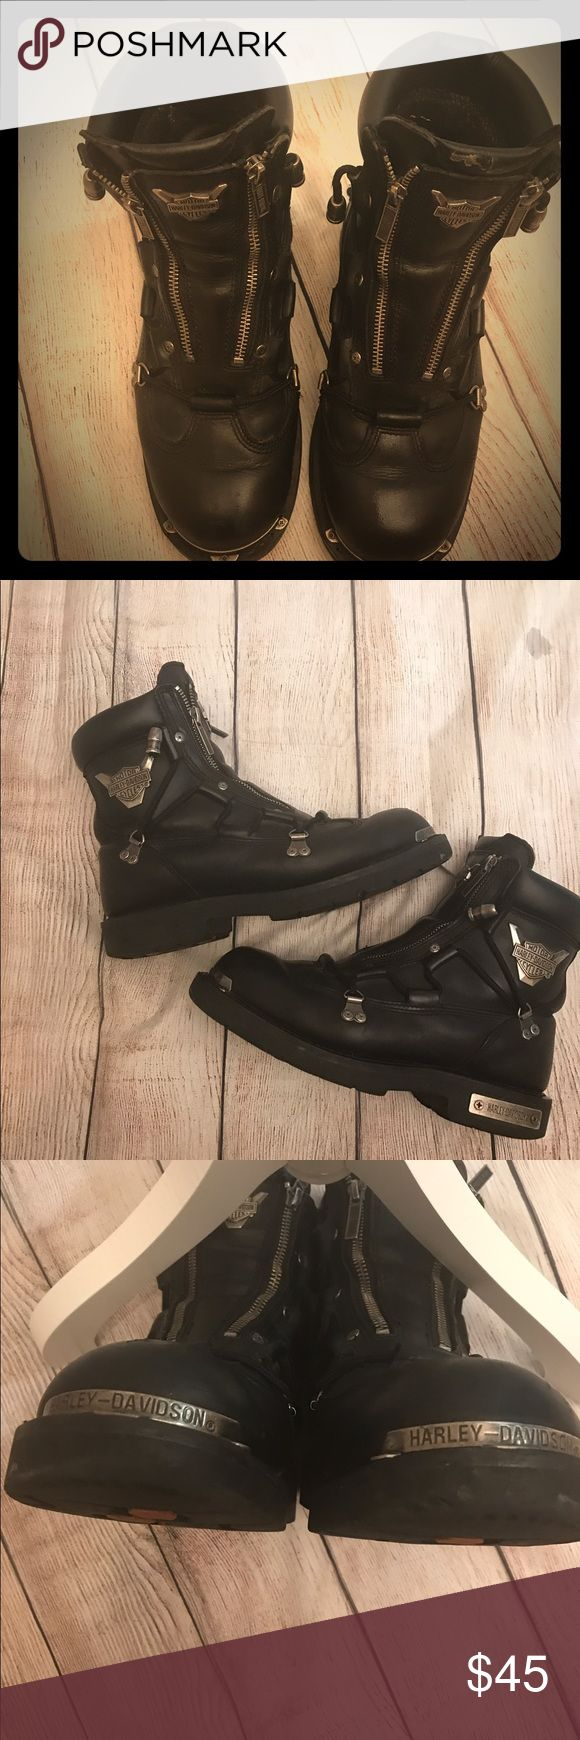 Men's Harley Davidson  Biker Boots 8.5 Men's Harley Davidson Brake Light Motorcycle /Biker Boots Sz 8.5 - Good Pre- Owned Condition - Minot Scuffing And Wear On The Souls- See Pictures Harley-Davidson Shoes Boots